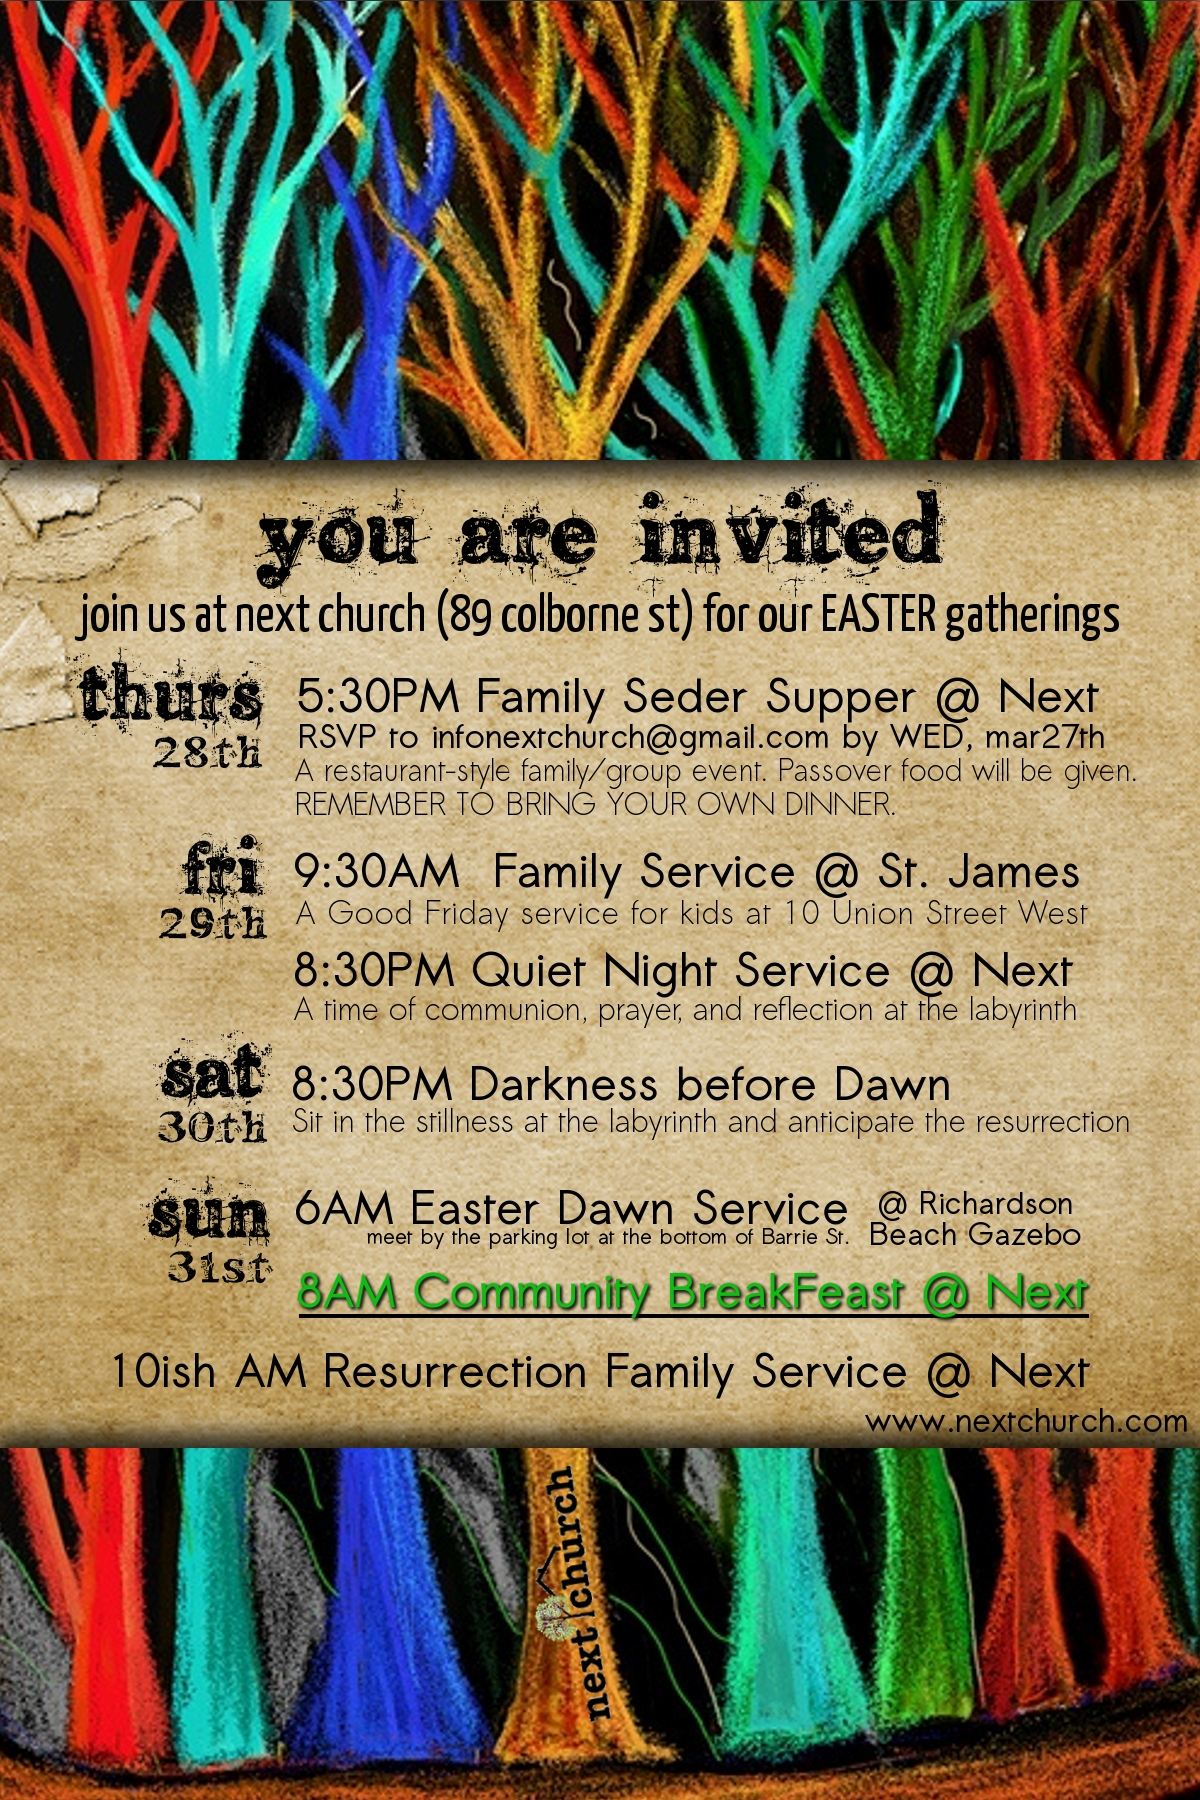 Poster for Easter 2013 Gatherings